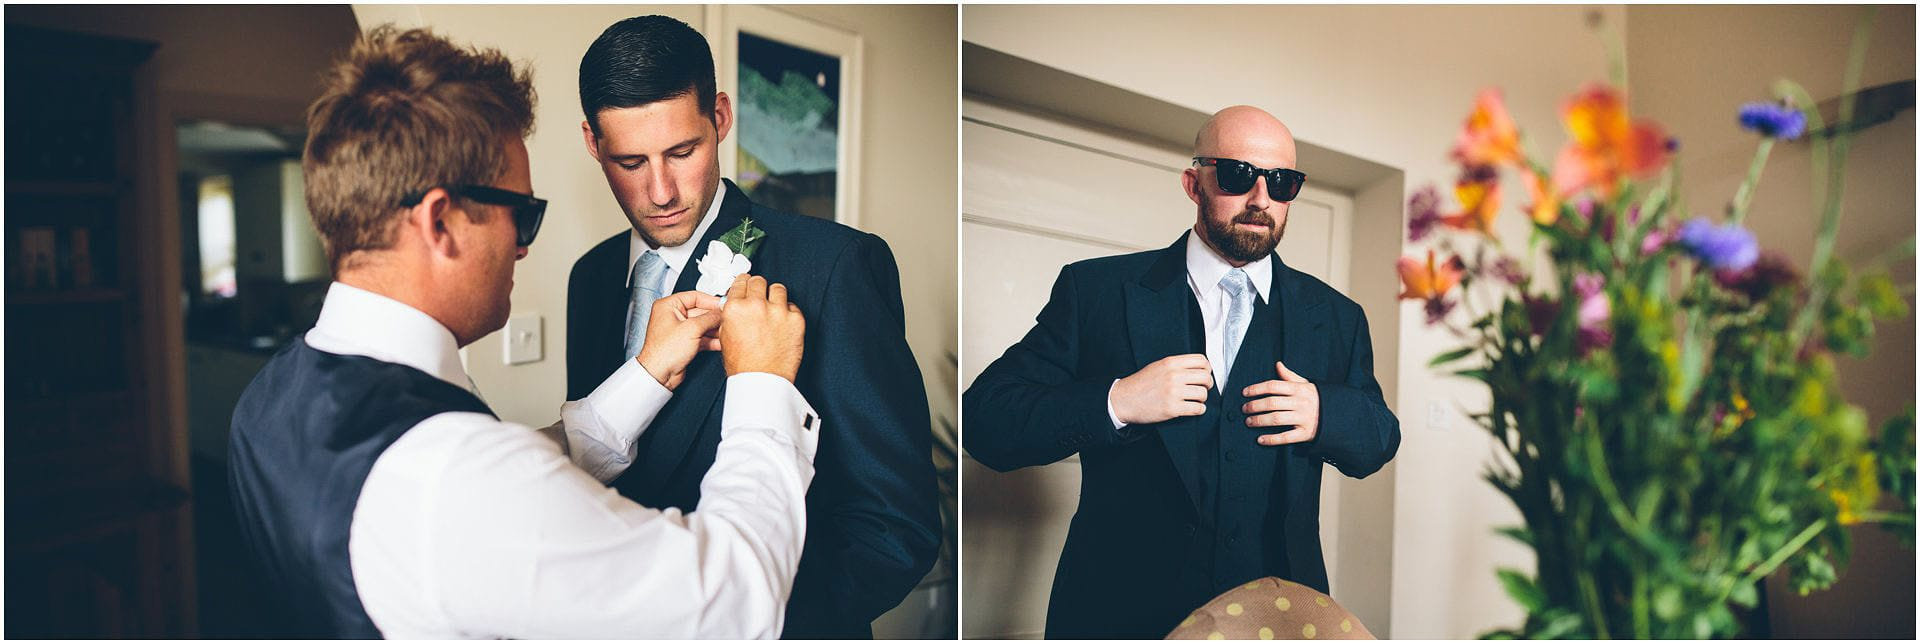 Combermere_Abbey_Wedding_Photography_0008